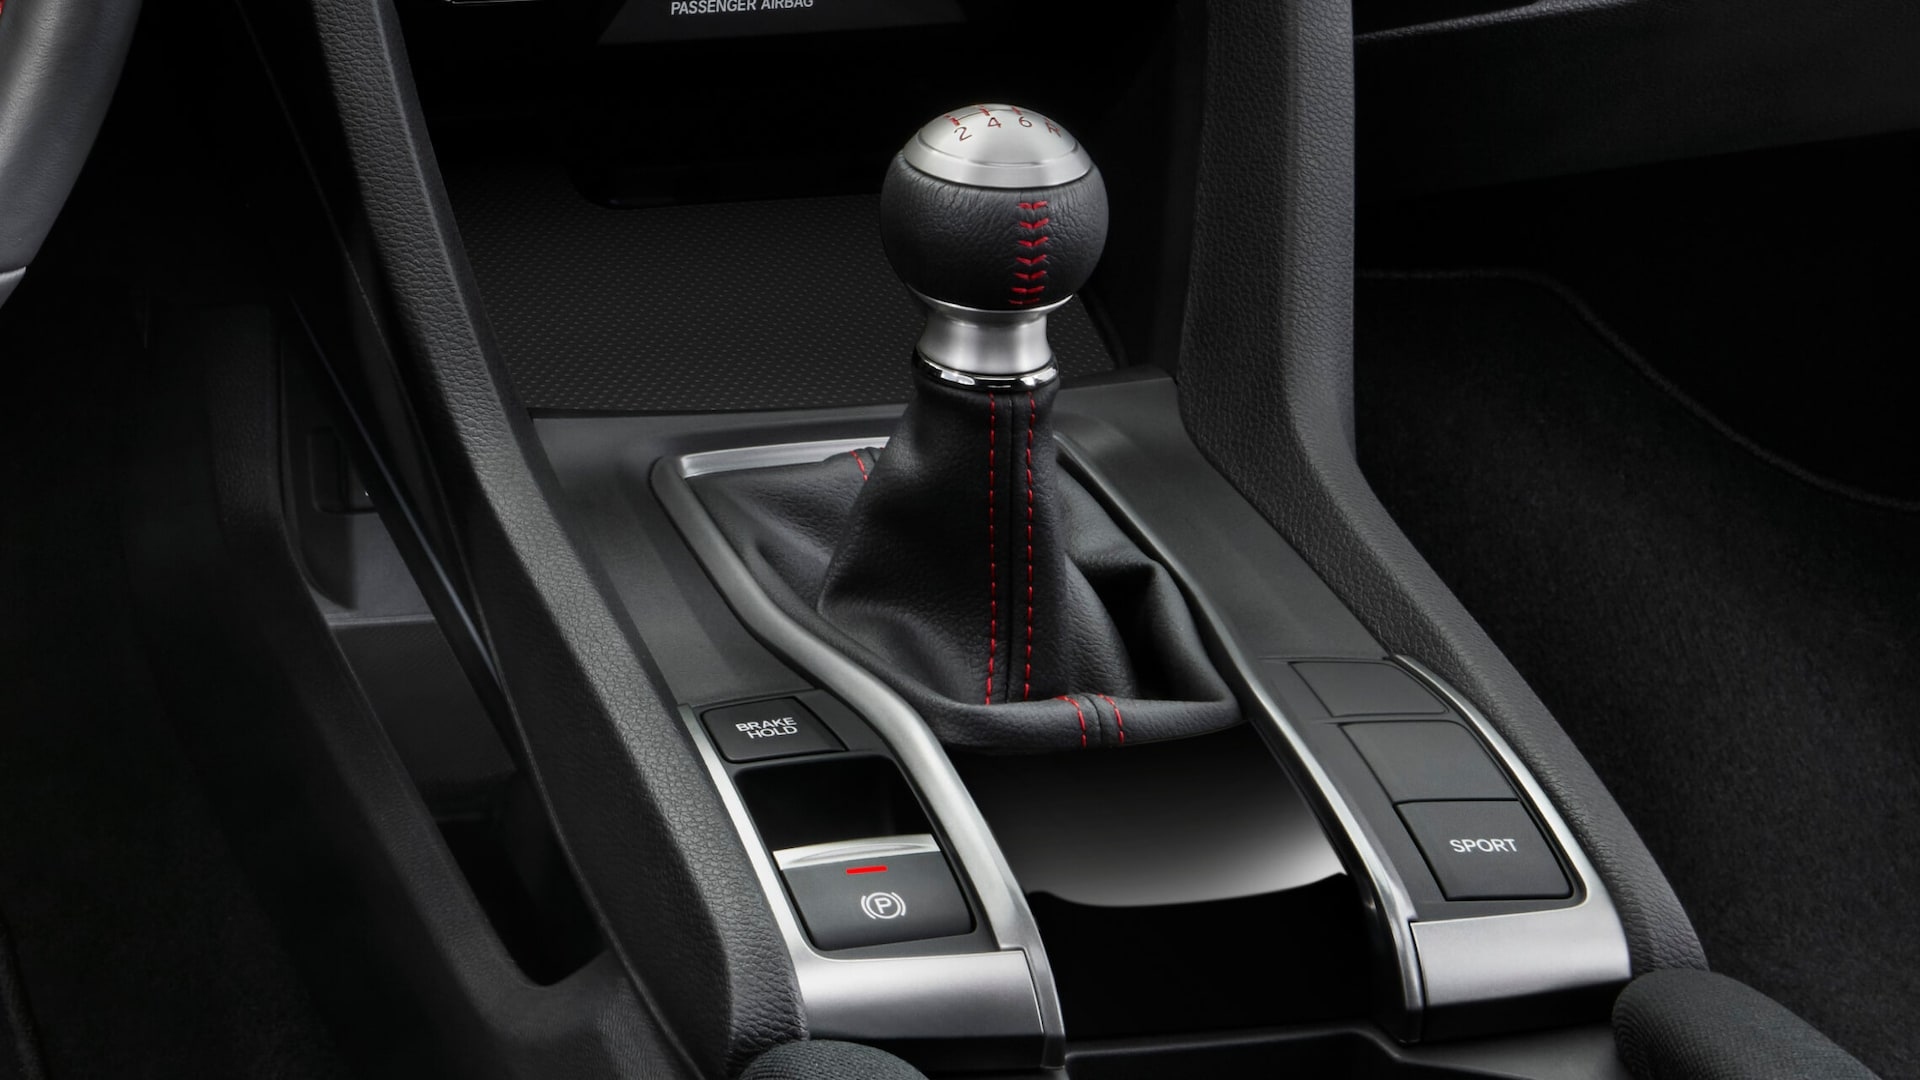 6-speed manual shifter detail with driving mode controls in the 2020 Honda Civic Si Sedan.